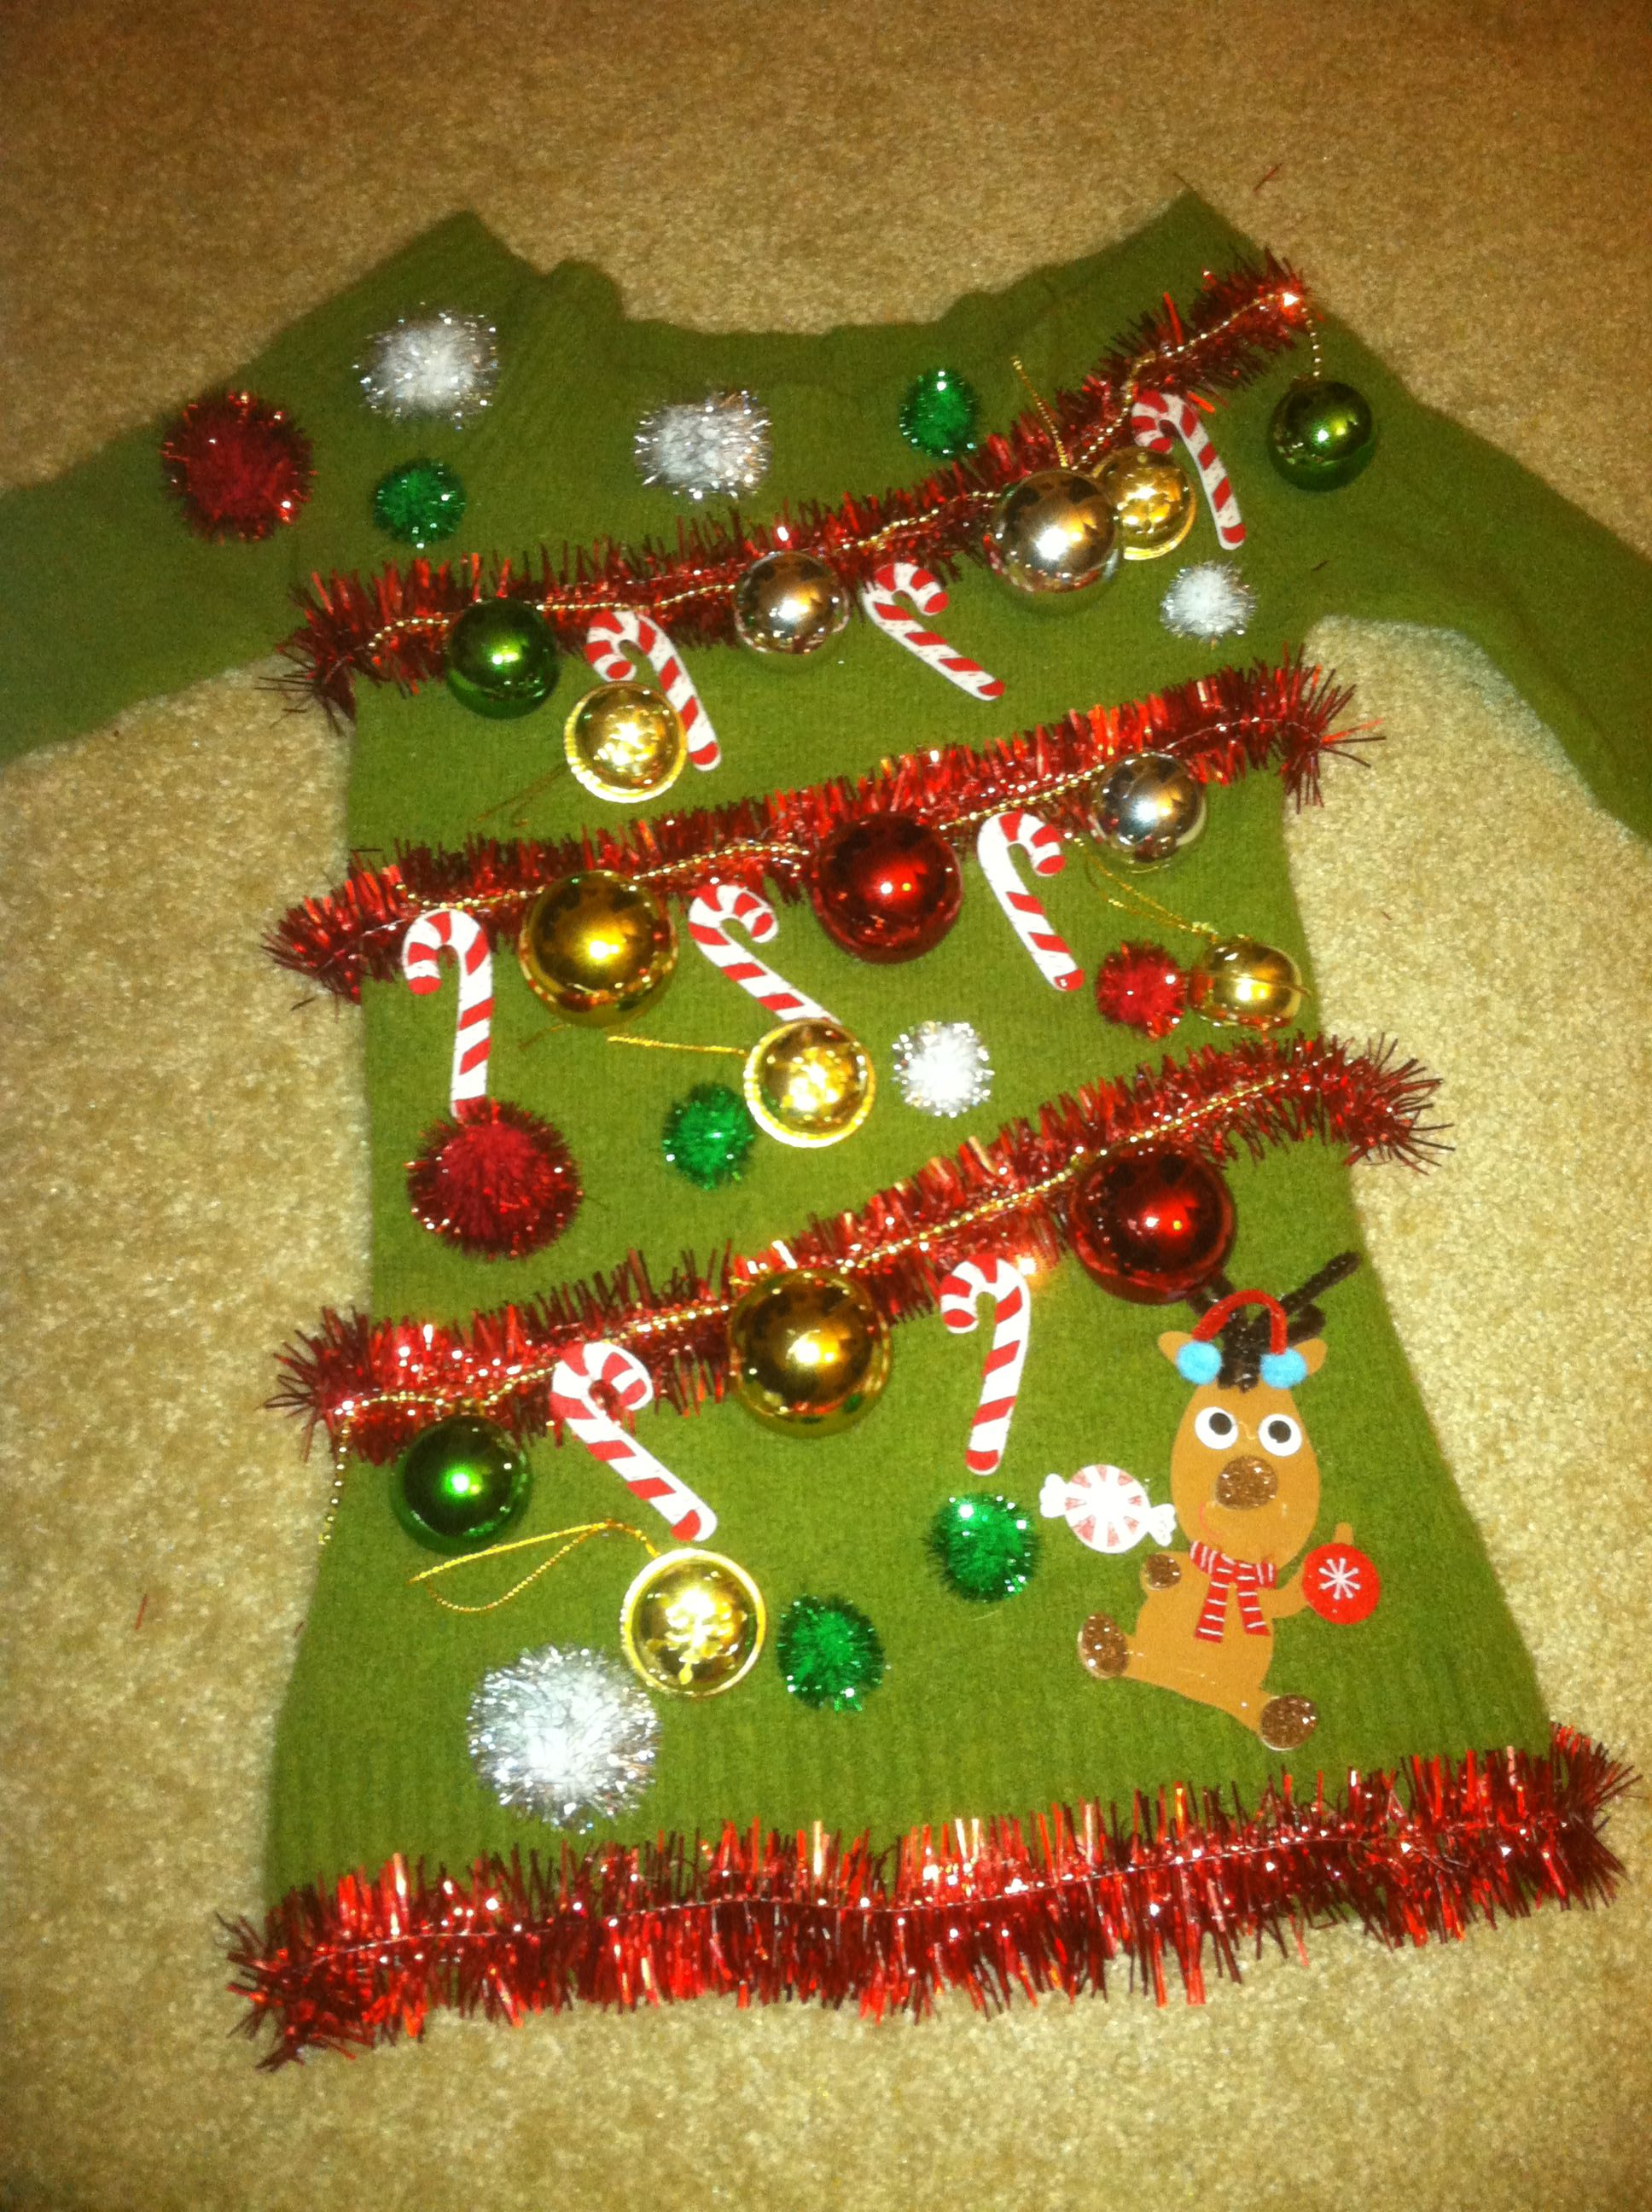 2dbde86d1c6 22 Fun and Quirky Christmas Costume Ideas For Your Holiday Party